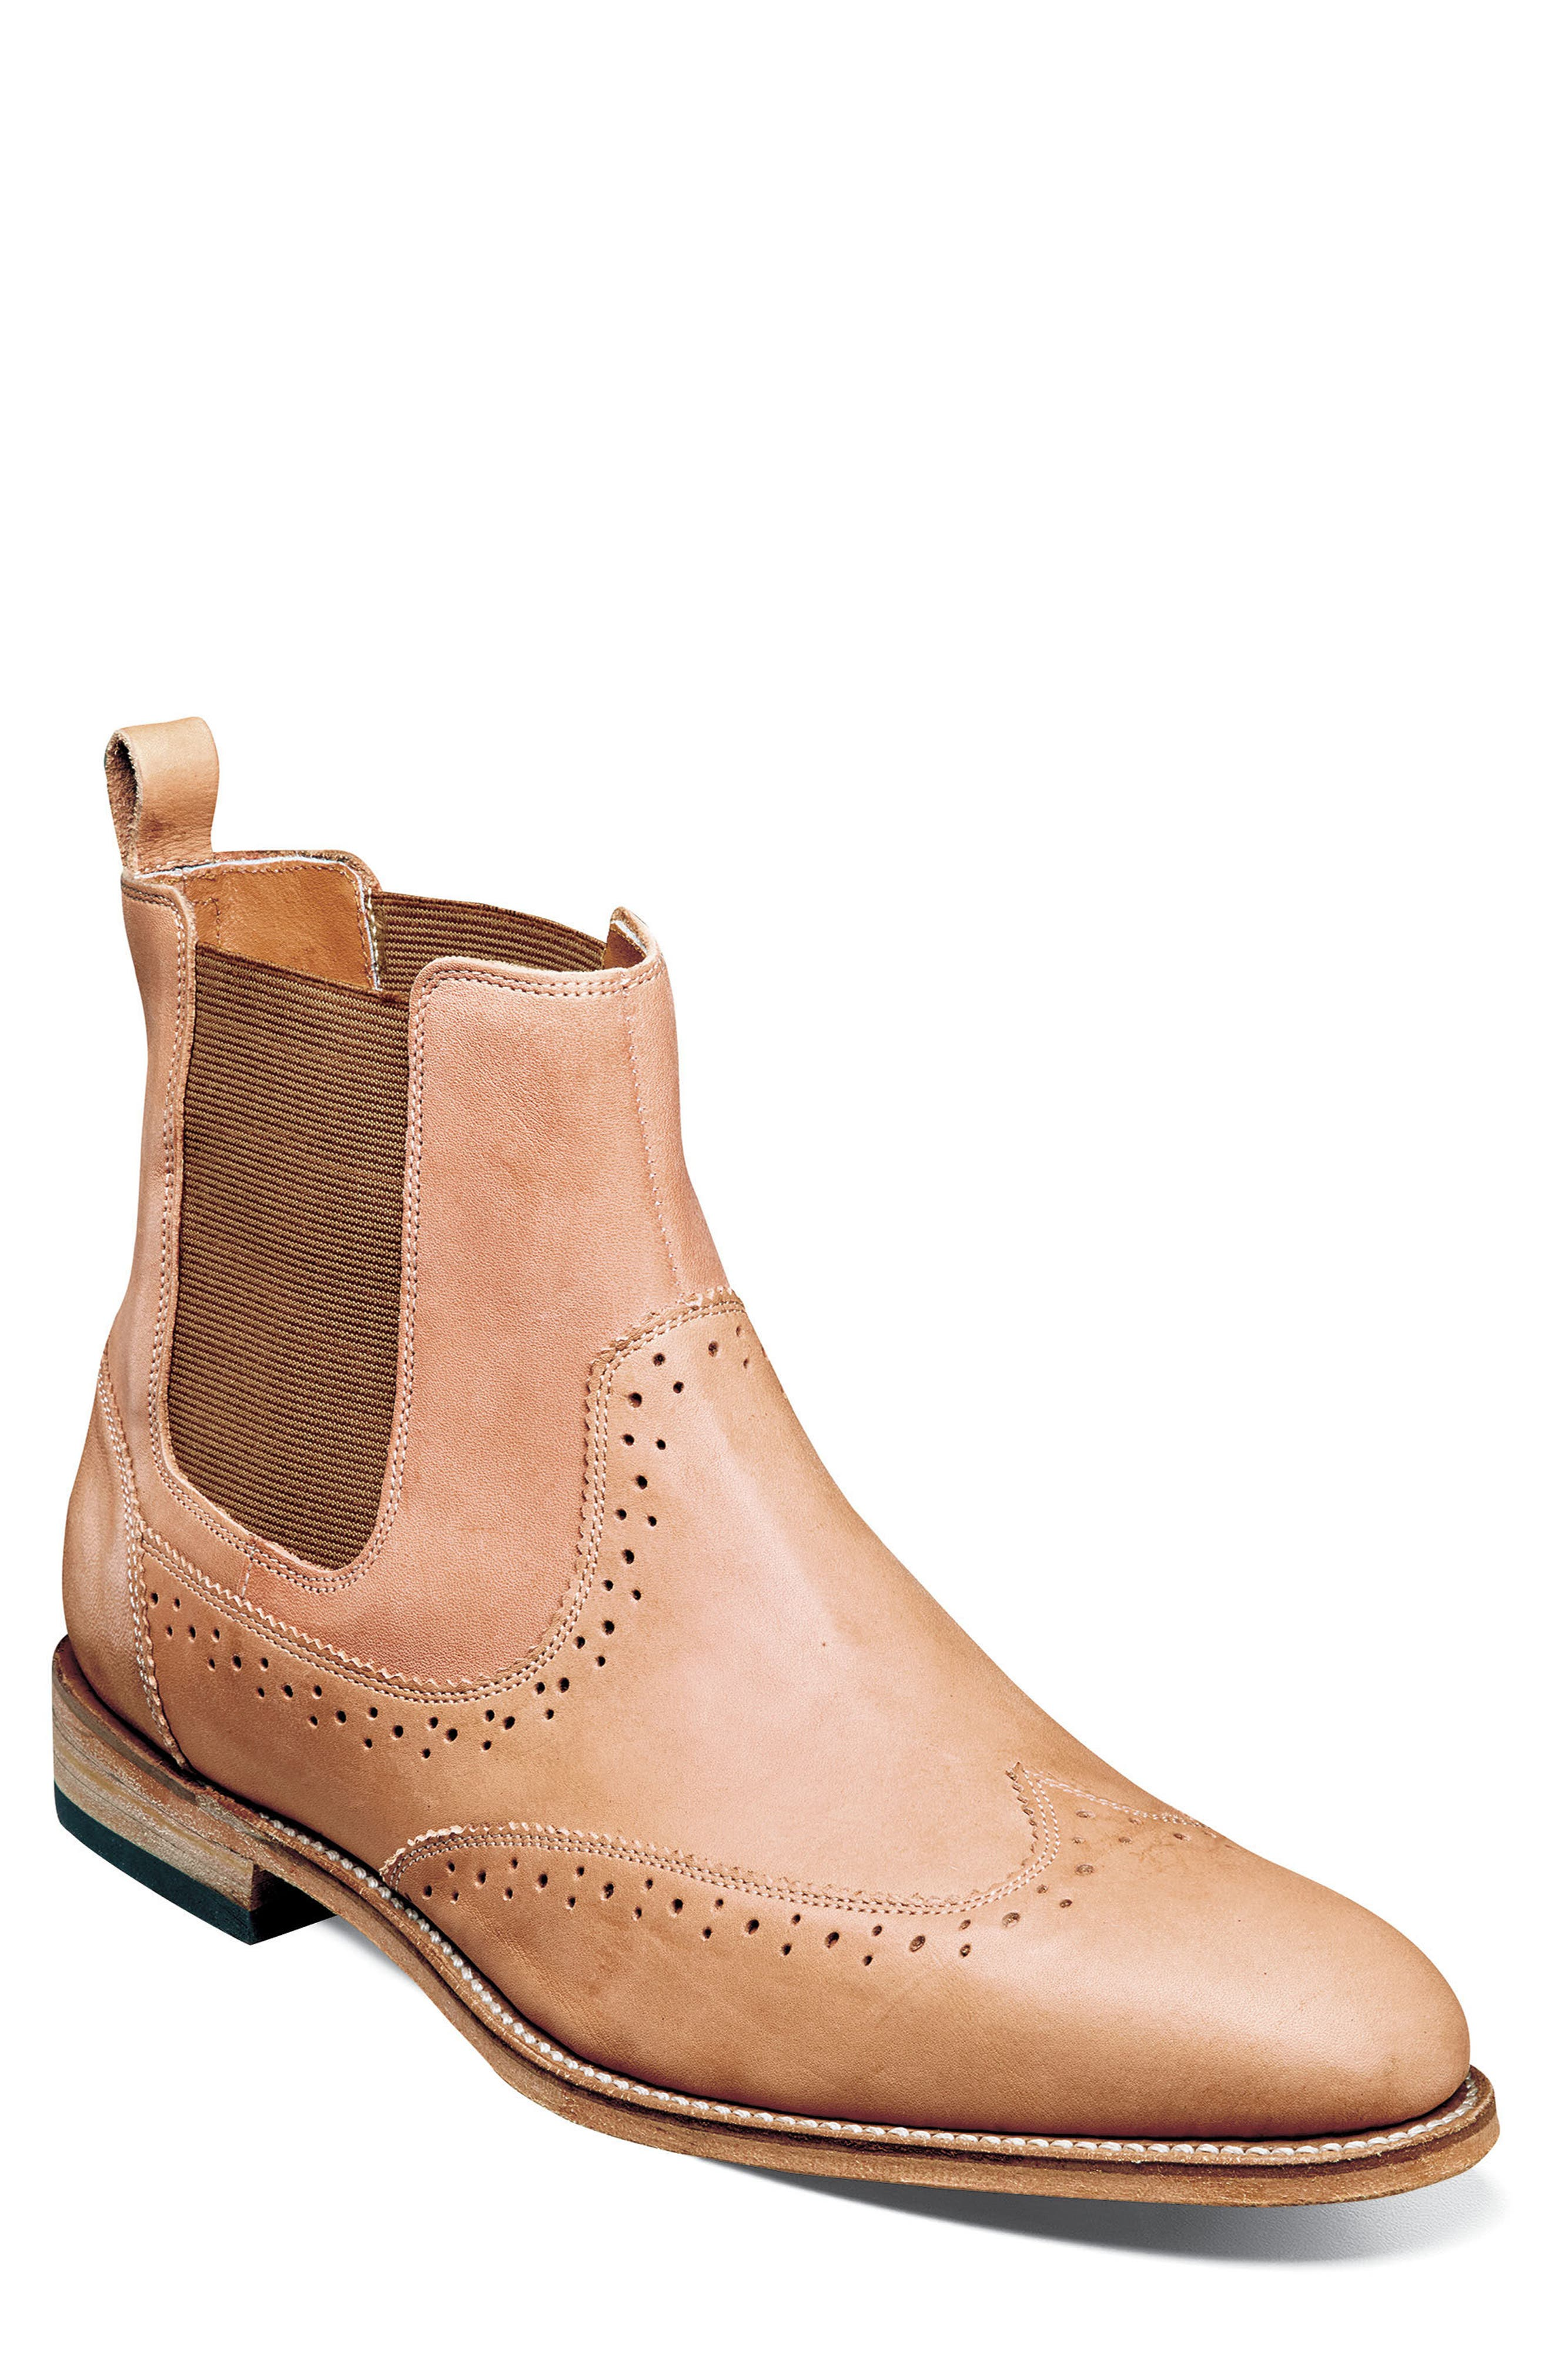 Stacy Adams M2 Wingtip Chelsea Boot - Brown